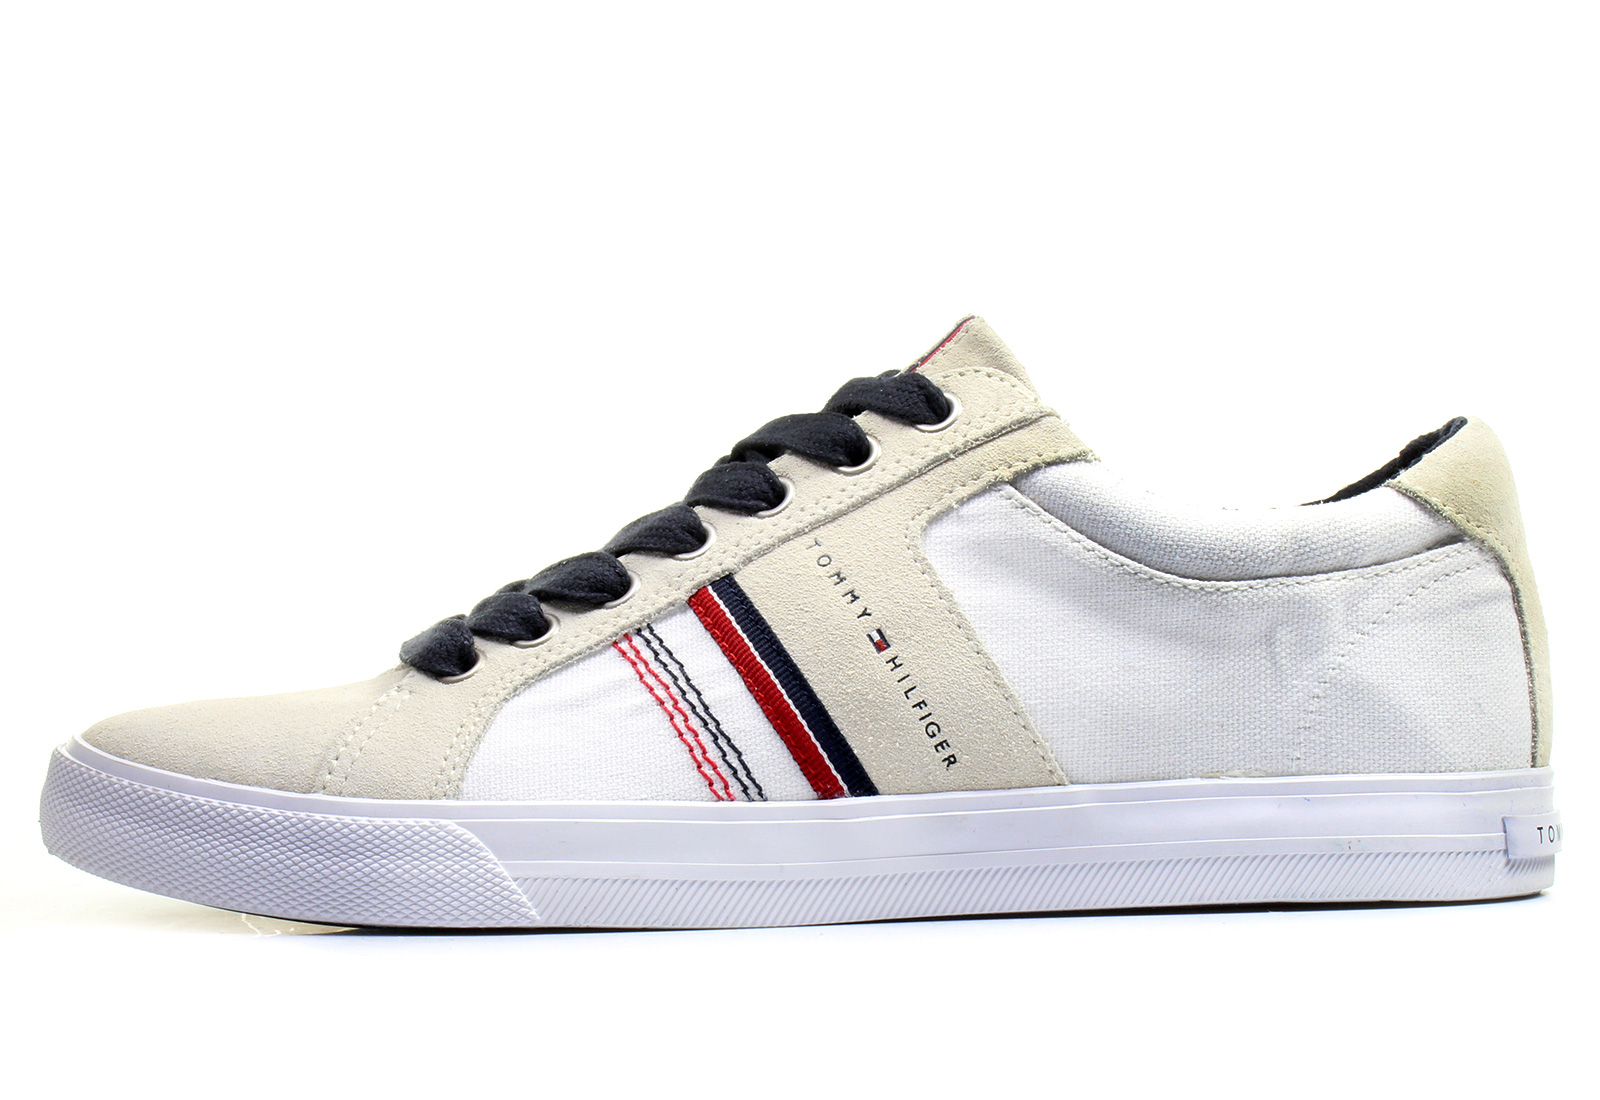 tommy hilfiger shoes winston 5c 14s 6990 100 online shop for sneakers shoes and boots. Black Bedroom Furniture Sets. Home Design Ideas